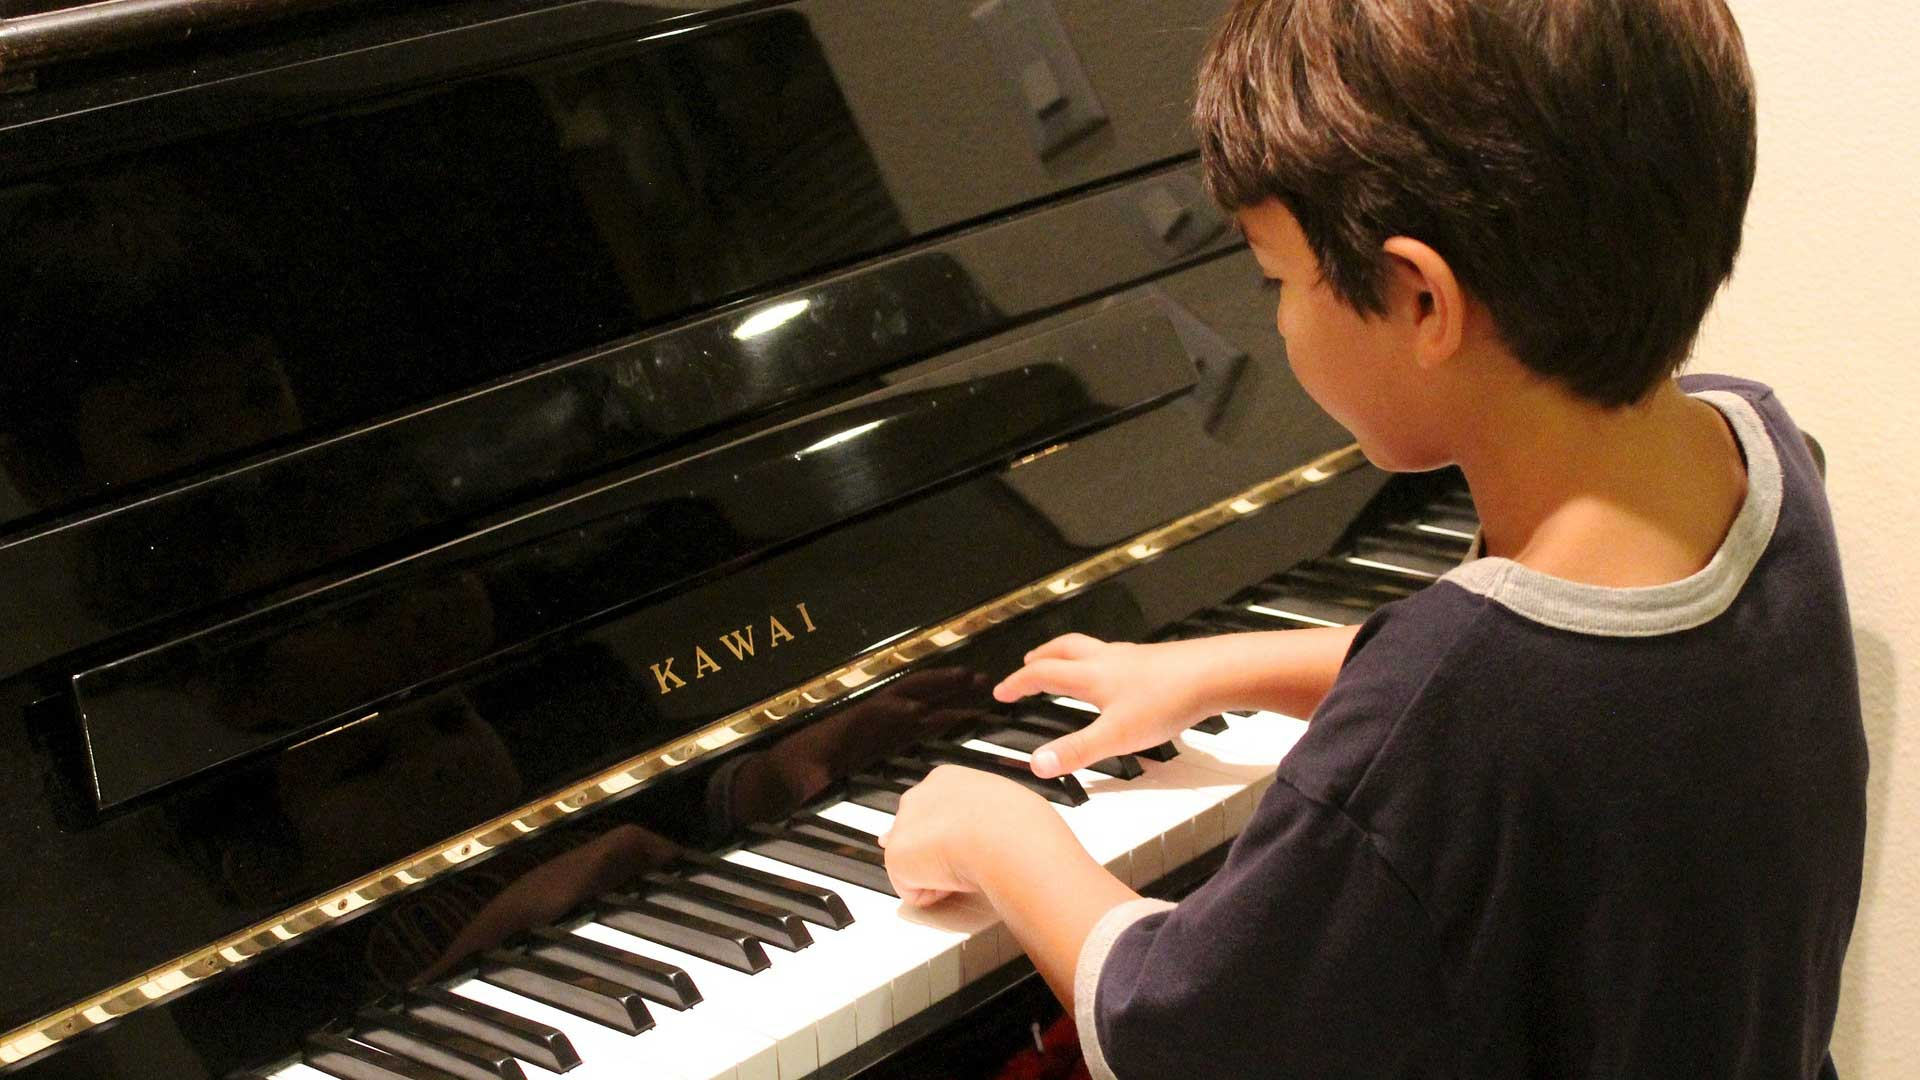 A UA study suggests parents who share musical experiences early get along better with their teenagers later.